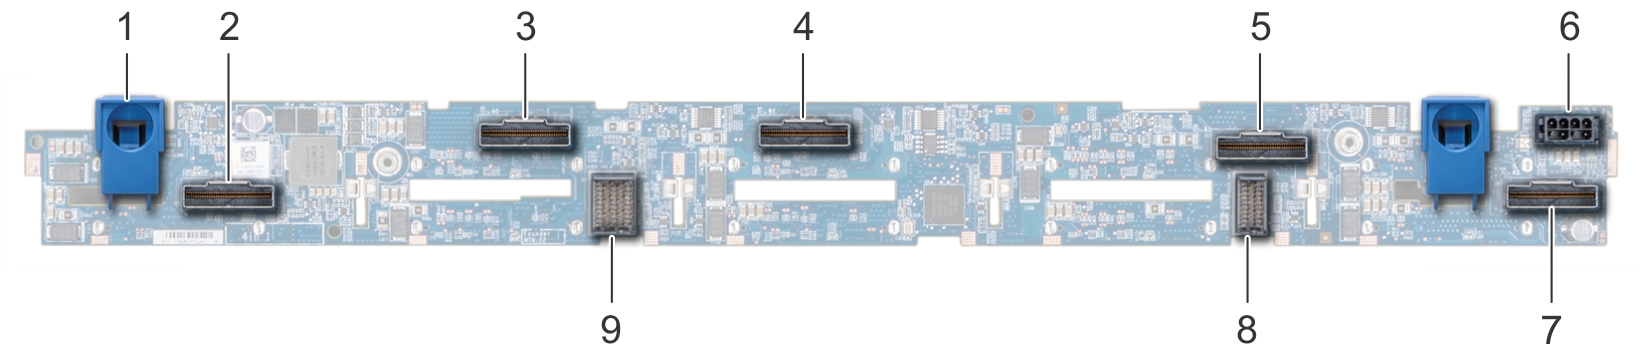 This image shows 10 X 2.5 drive backplane